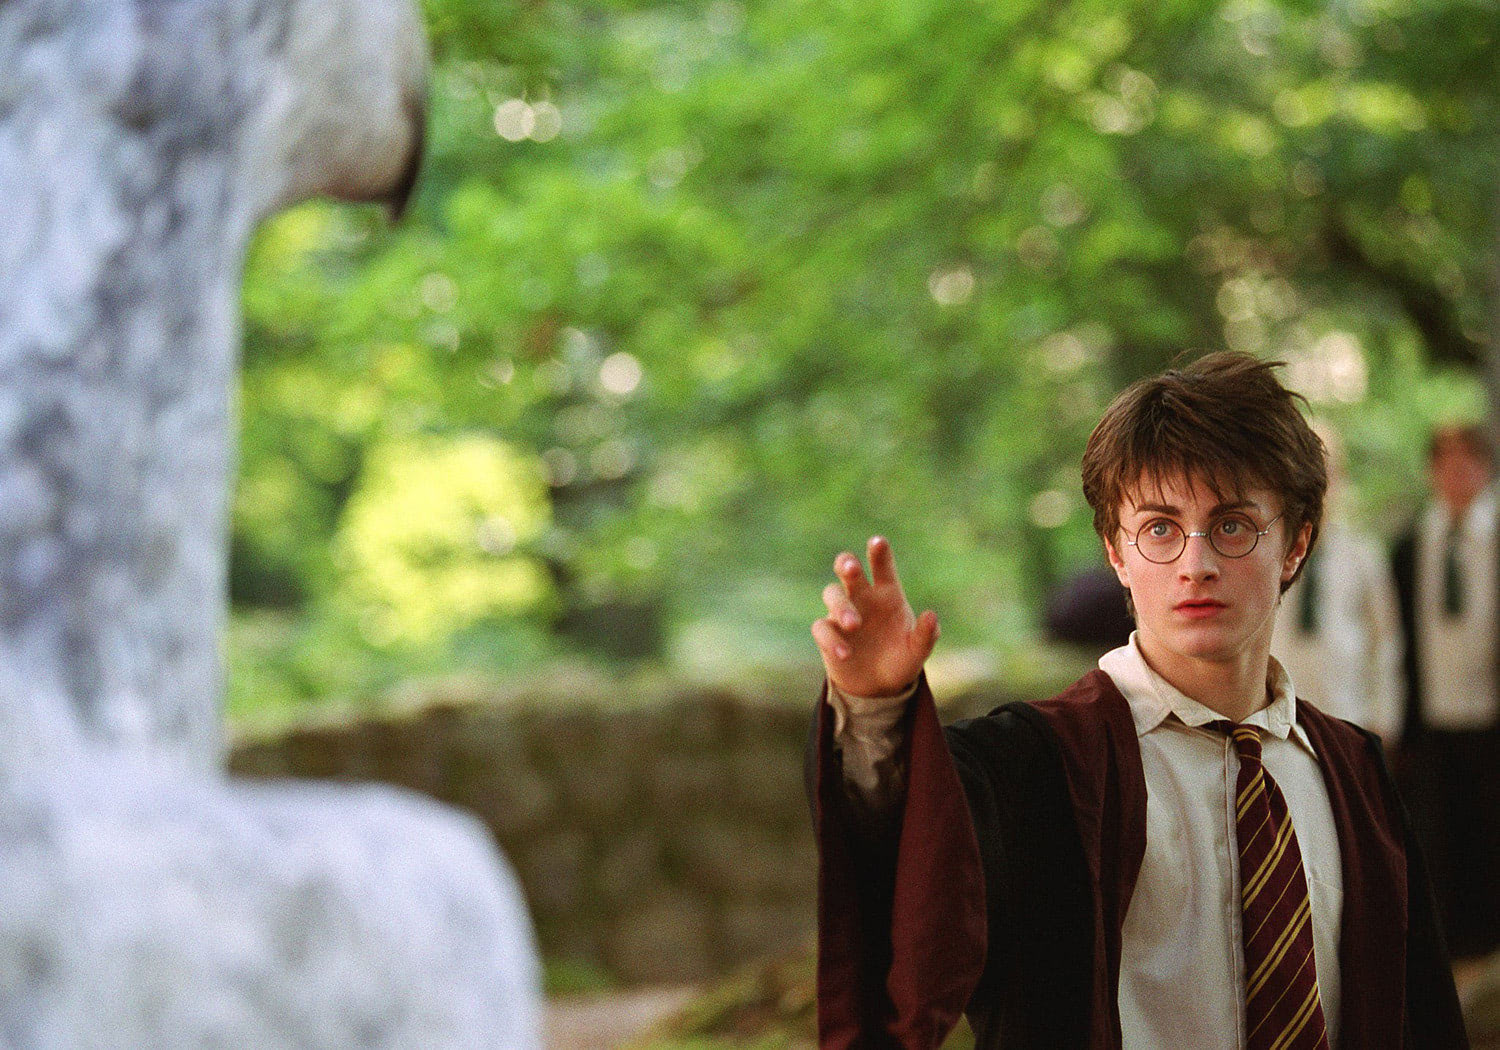 Harry approaches Buckbeak